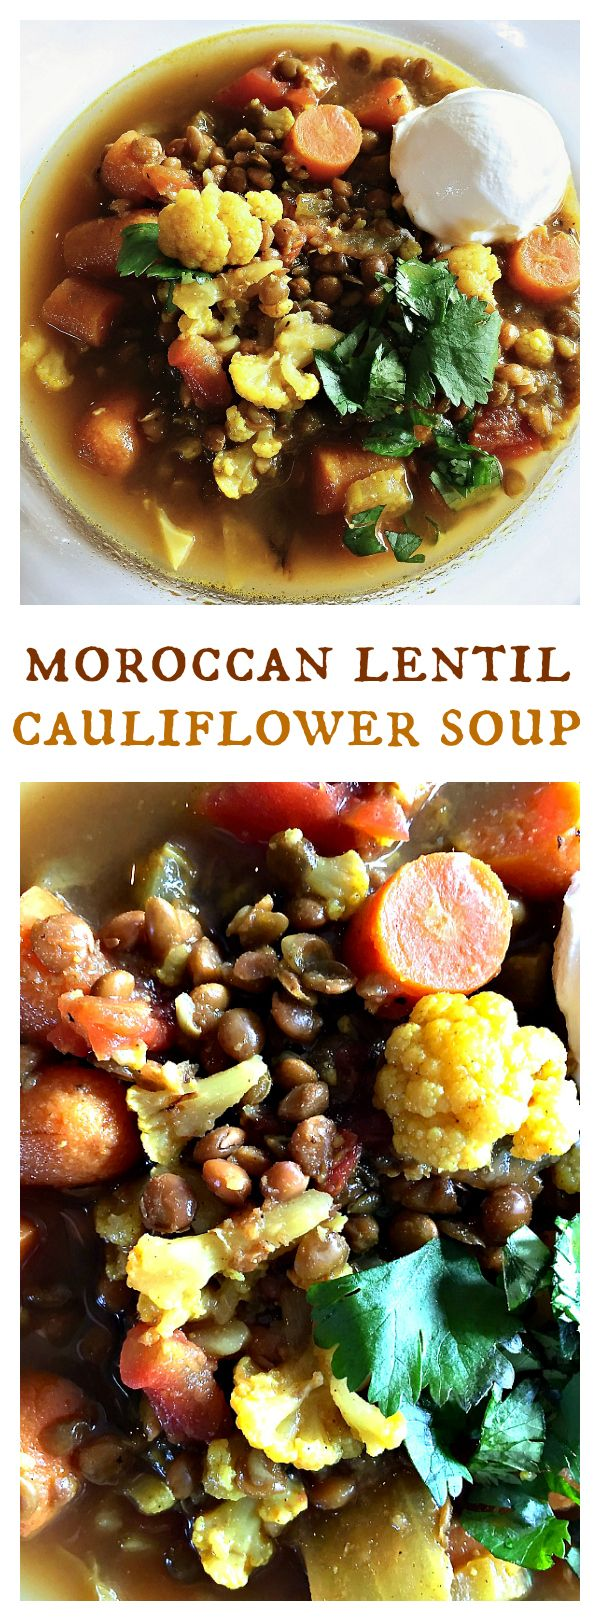 Moroccan Lentil Cauliflower Soup is a delicious winter Vegetarian soup to serve for lunch or dinner!